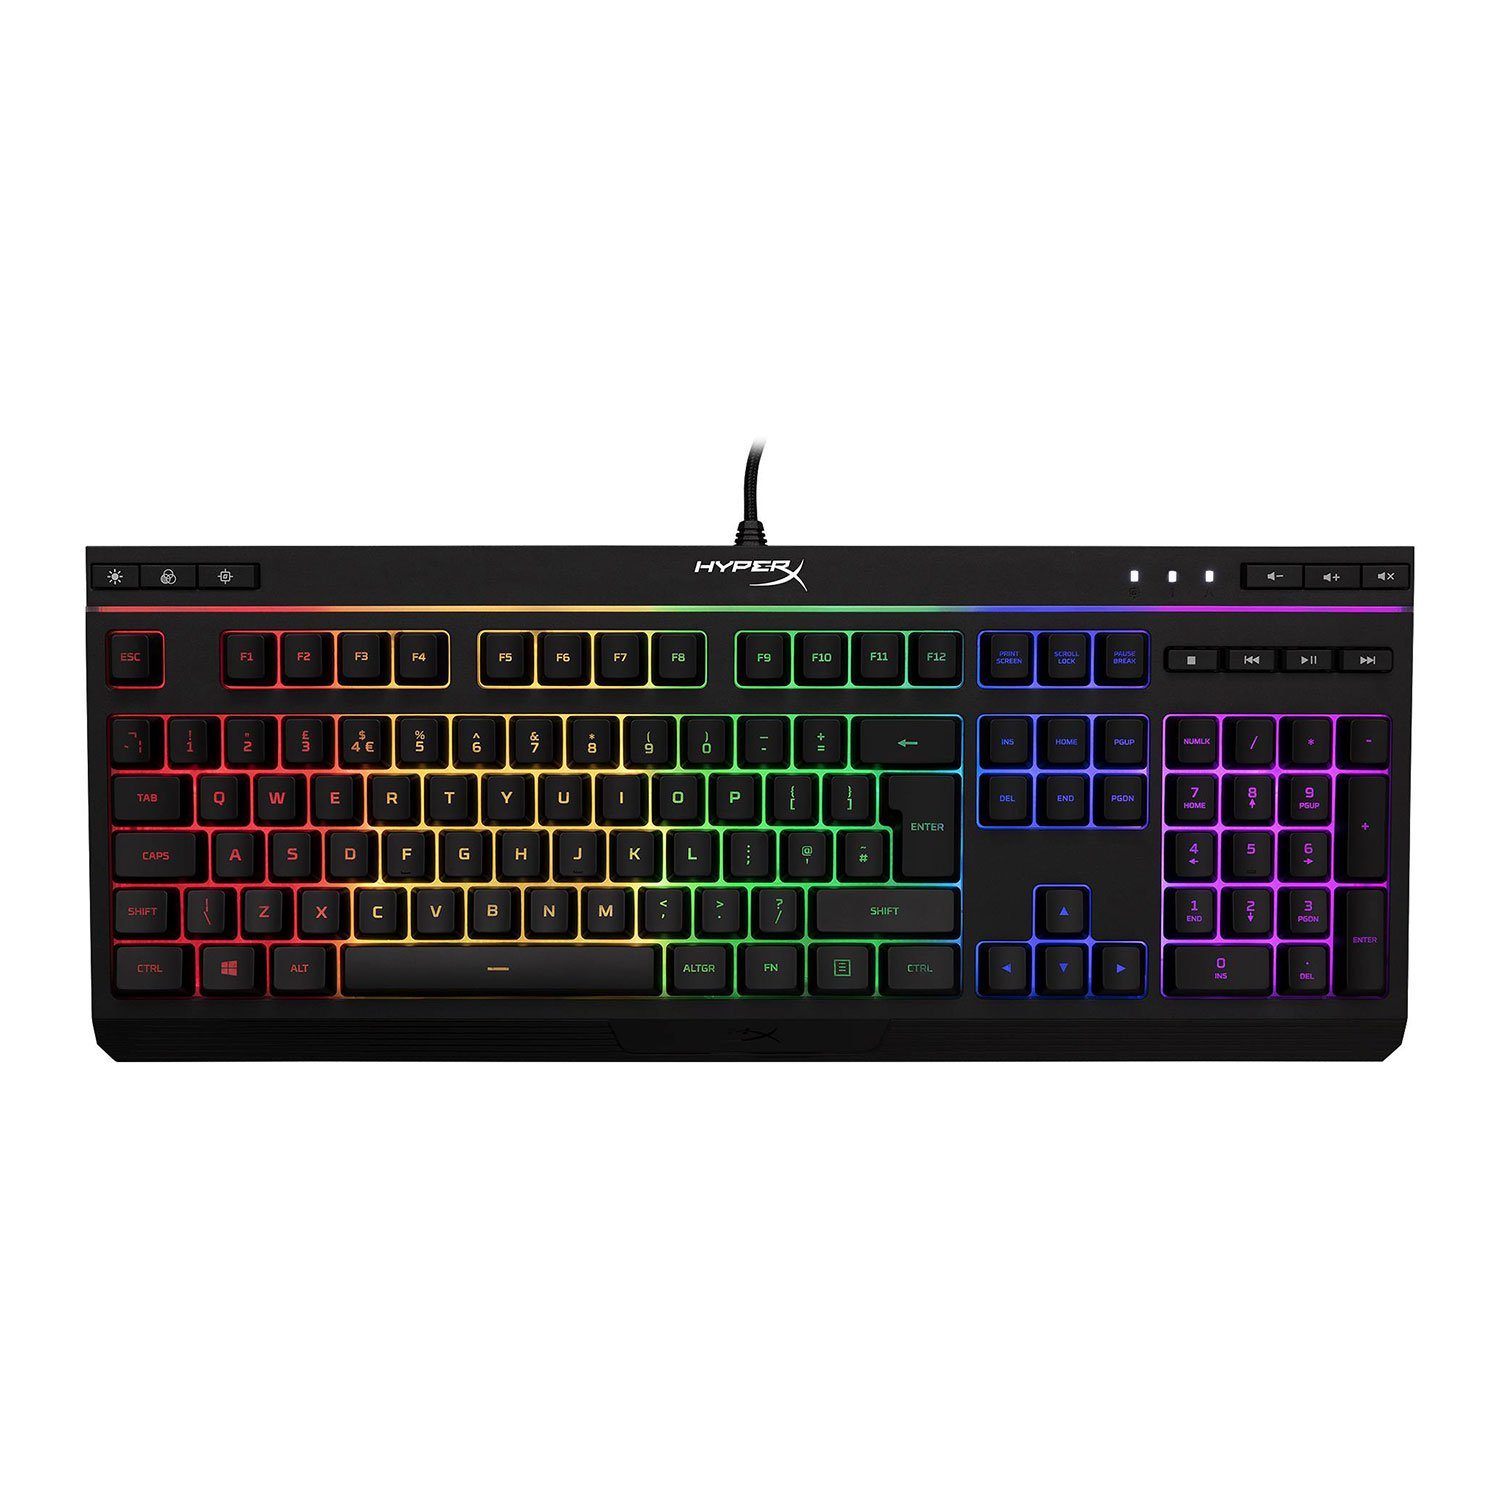 Image of HyperX Alloy Core (Tactile) RGB Membrane Gaming Keyboard - Black (US Layout)